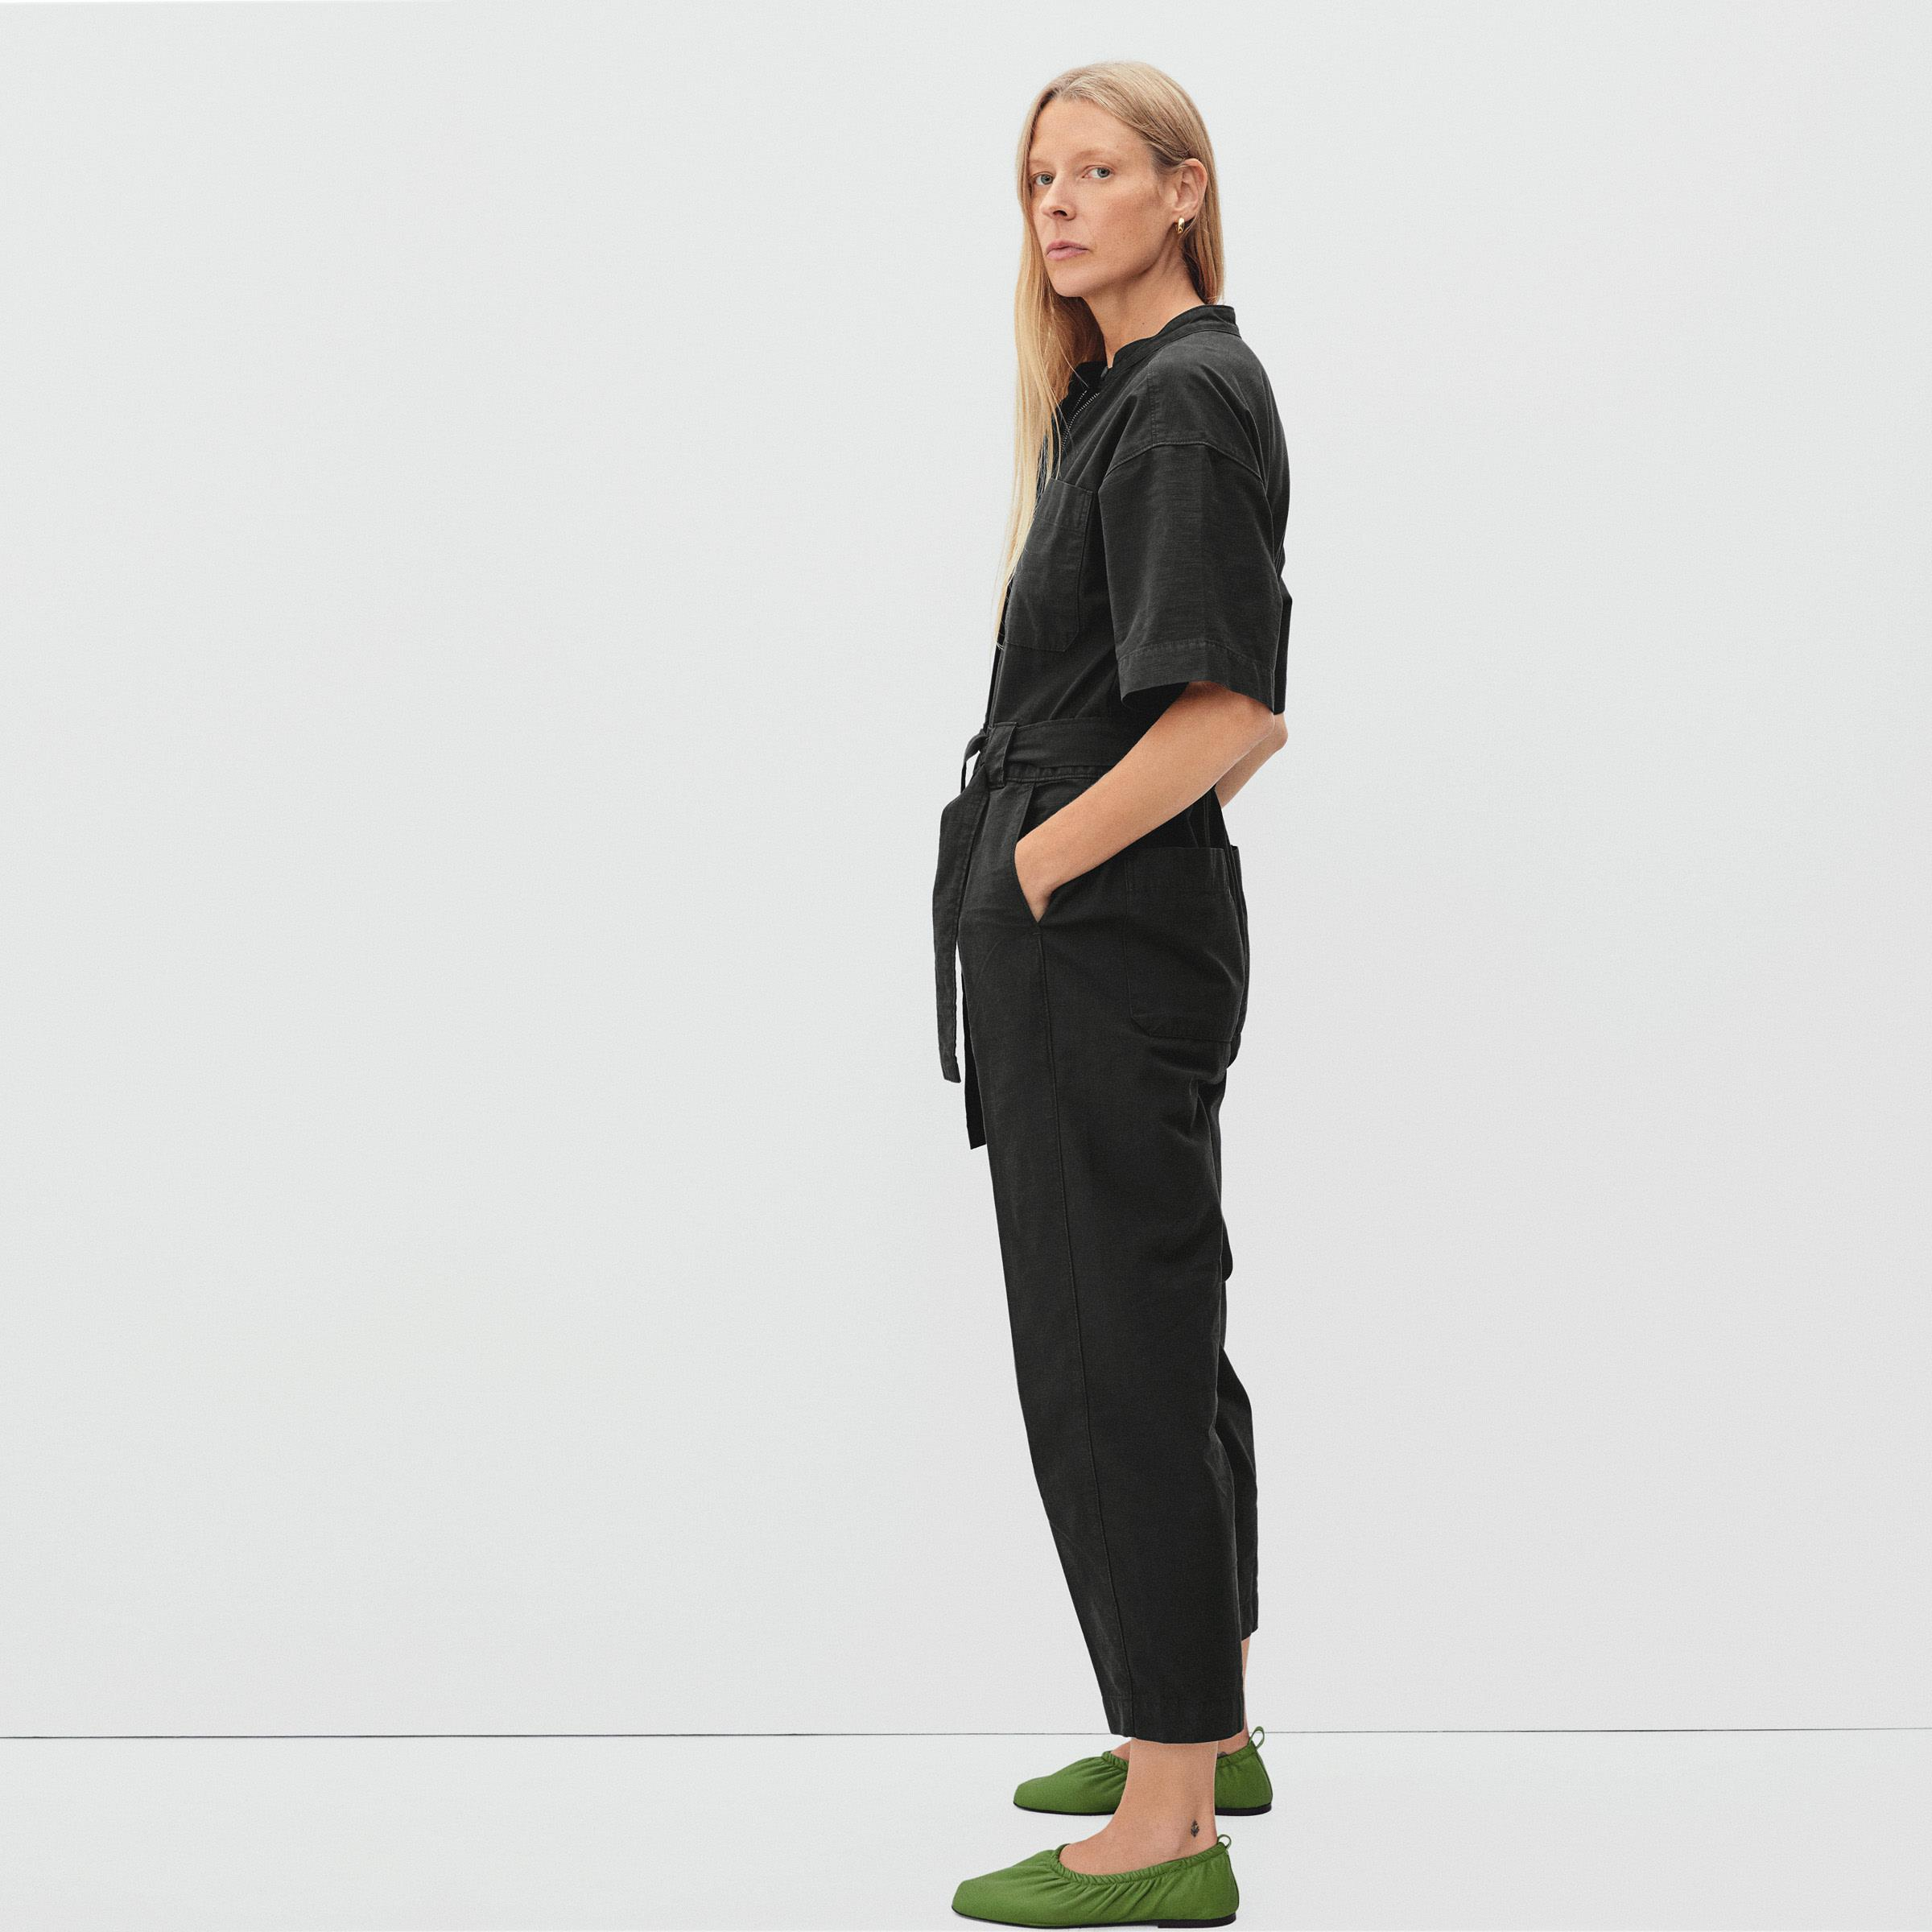 The Fatigue Short-Sleeve Jumpsuit 3